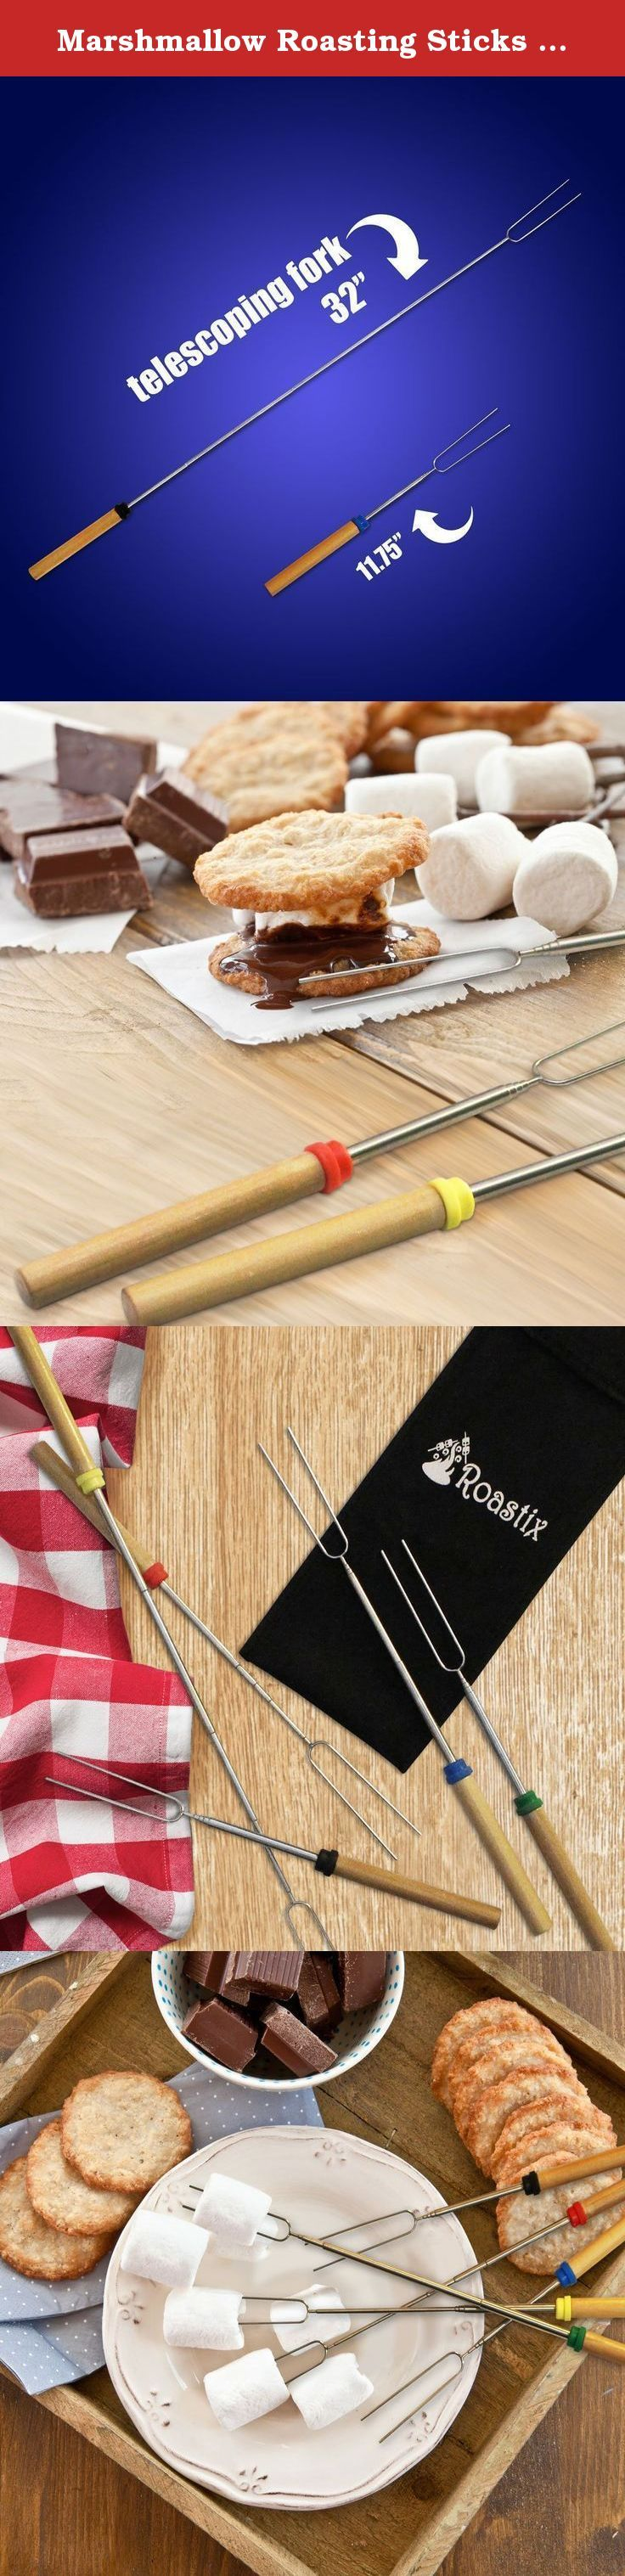 Marshmallow Roasting Sticks By Roastix - Stainless Steel, Extendable, Telescopic & Rotating S'mores Skewers - Ergonomic, Wooden Handles - 32'' Long Campfire, Camping & Patio Fire Pit Forks - Set Of 5. b>The Ultimate Marshmallow Roasting Stick Set Is Now Available On Amazon! Marshmallows and hot dogs are usually served during our fun family and friend gatherings! How would you like to own a top quality roasting stick set that would minimize the effort and maximize the comfort and pleasure?...